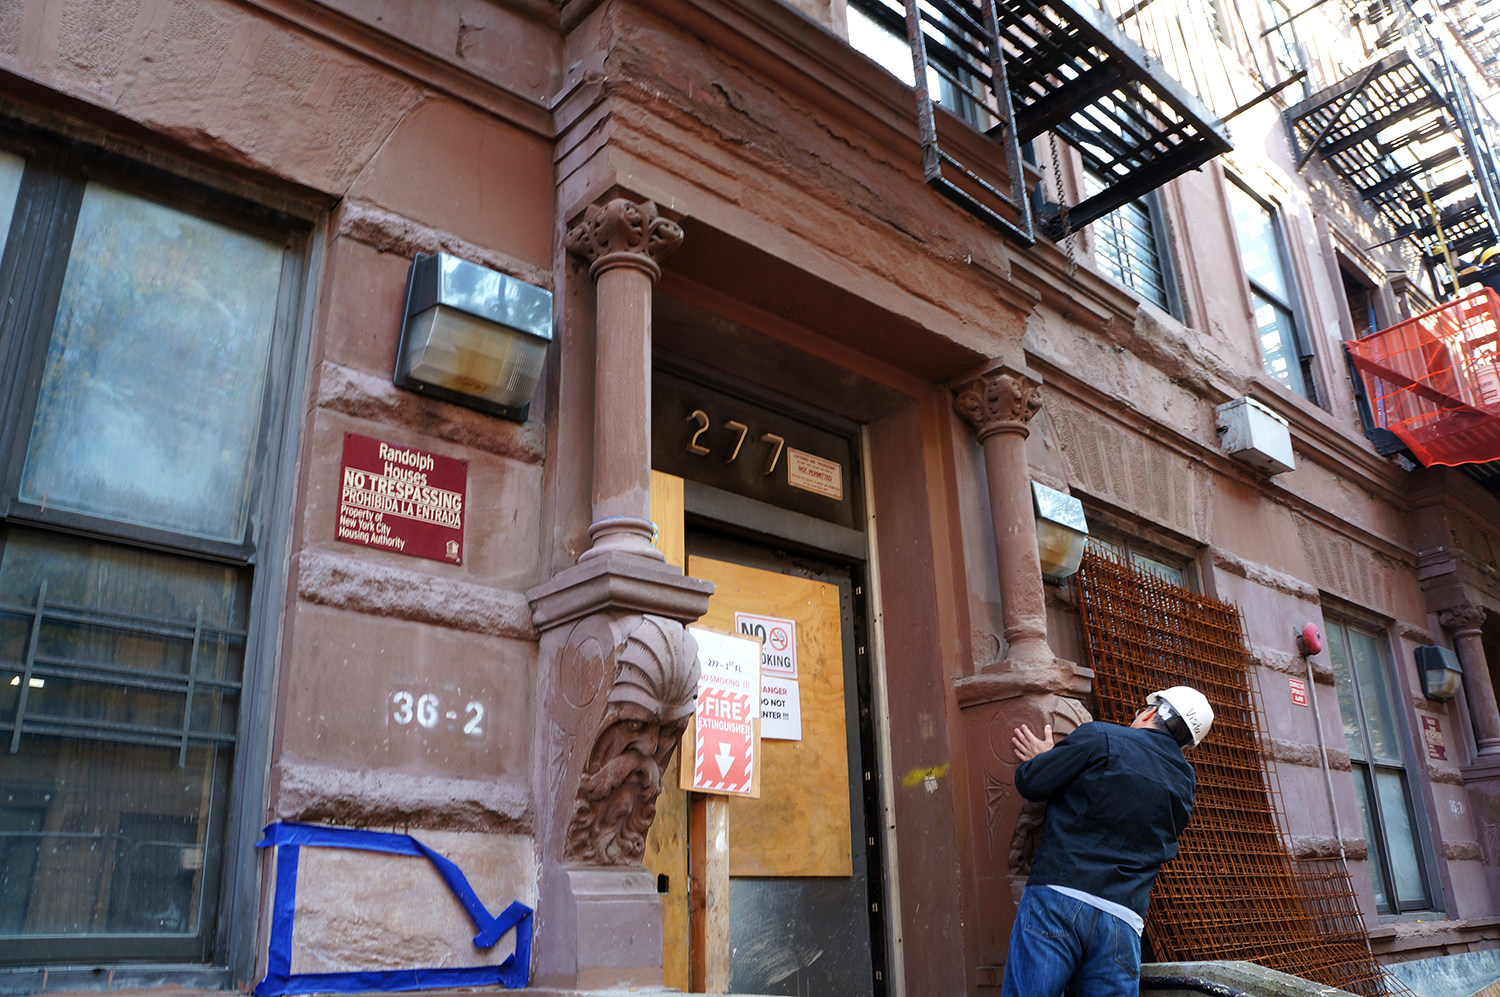 A historian examines facade details at Randolph Houses. photo by Rebecca Baird-Remba